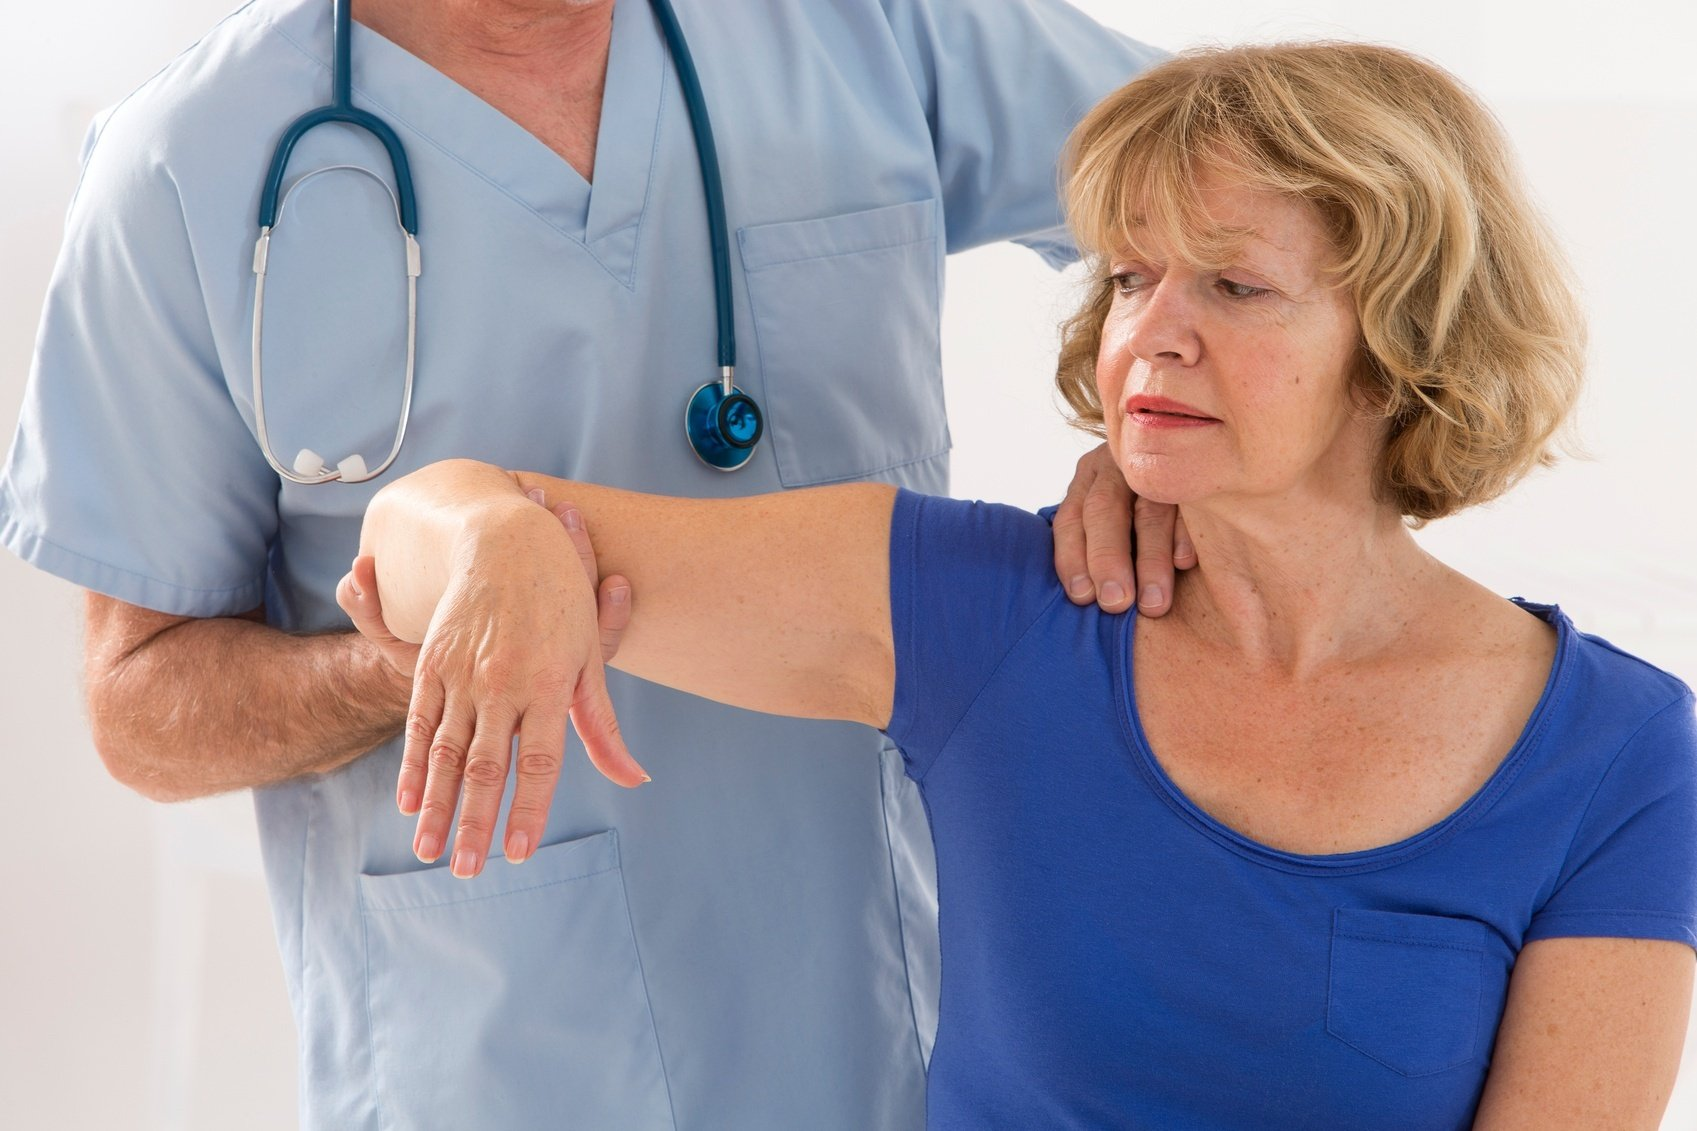 Chiropractor's can help relieve the symptoms of whiplash